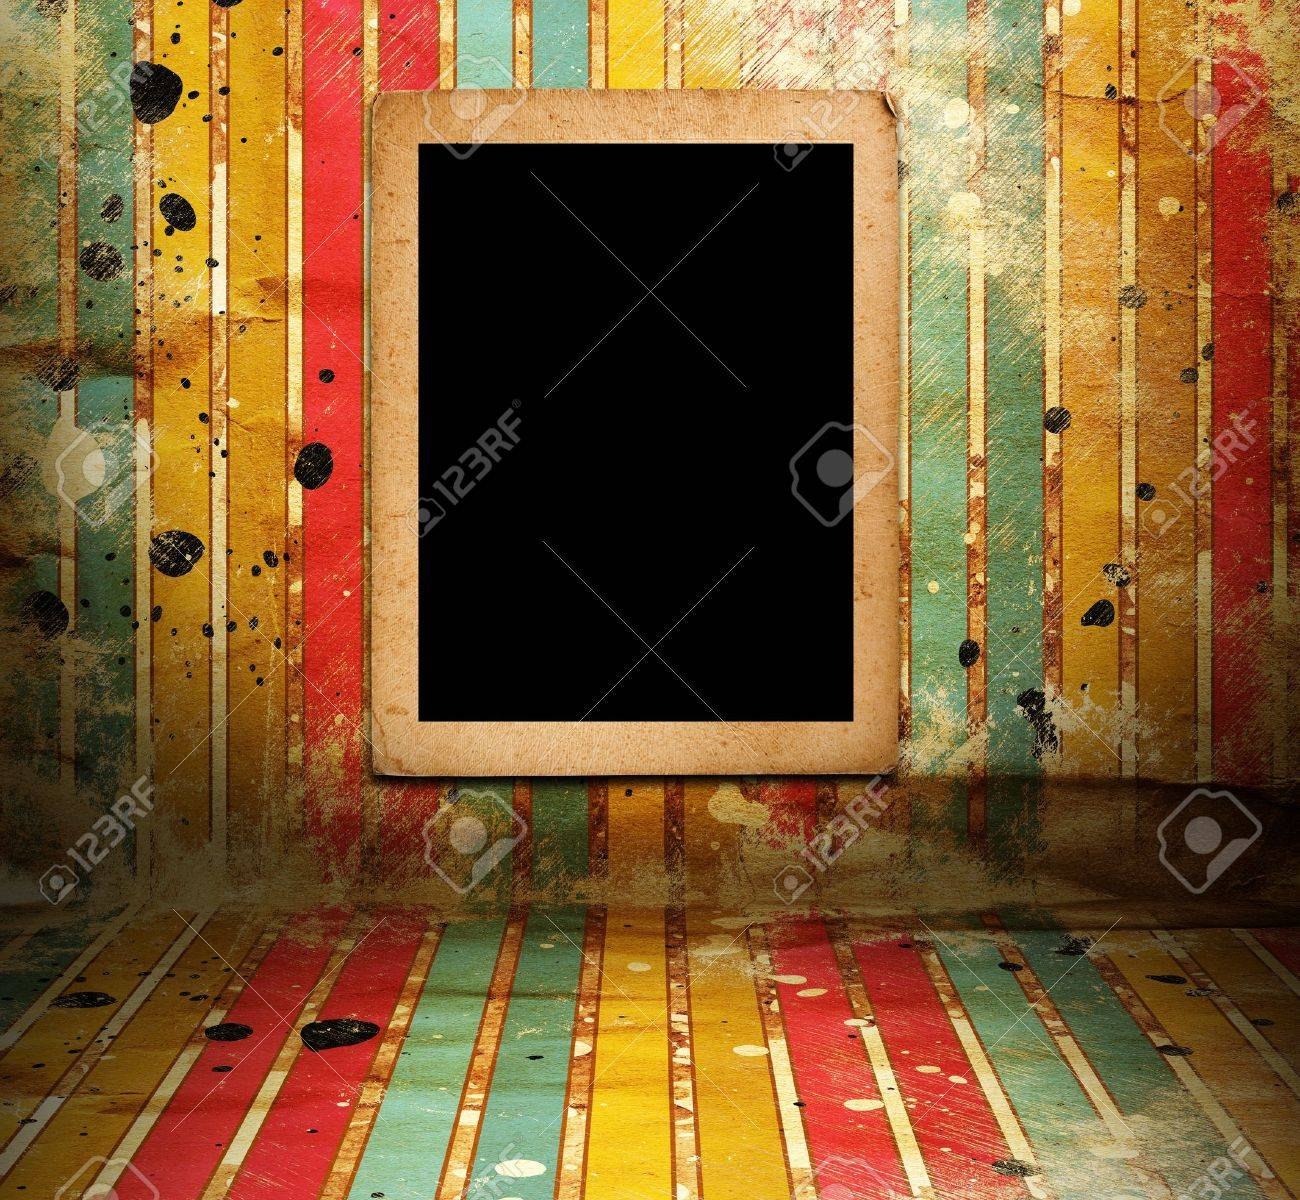 Illsutration Of Frame In Room With Striped Wallpapers Stock Photo ...